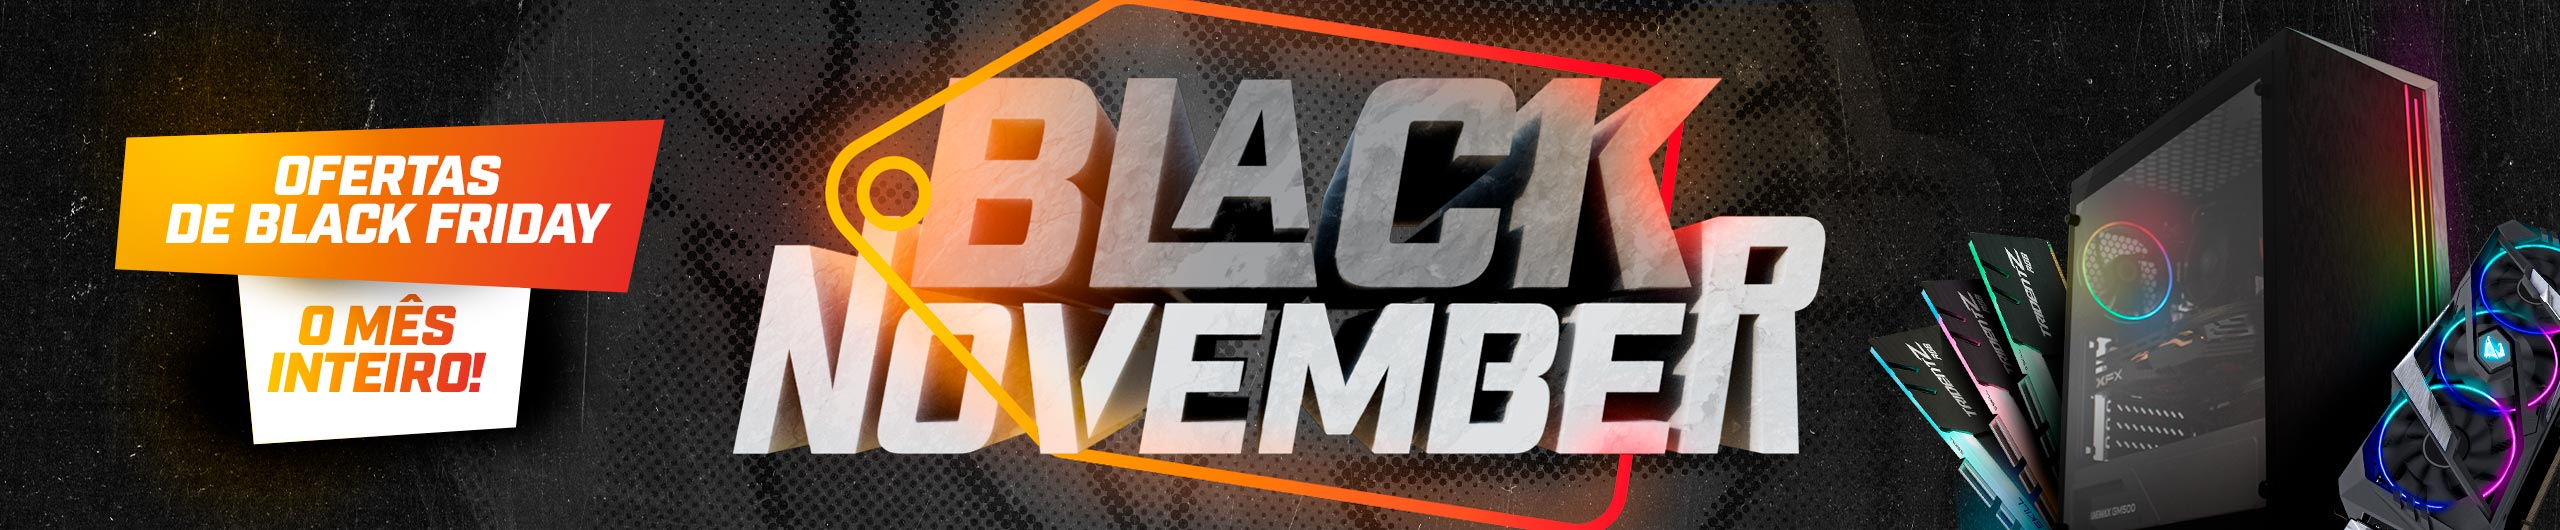 Black November Ofertas de Black Friday o Mês Inteiro